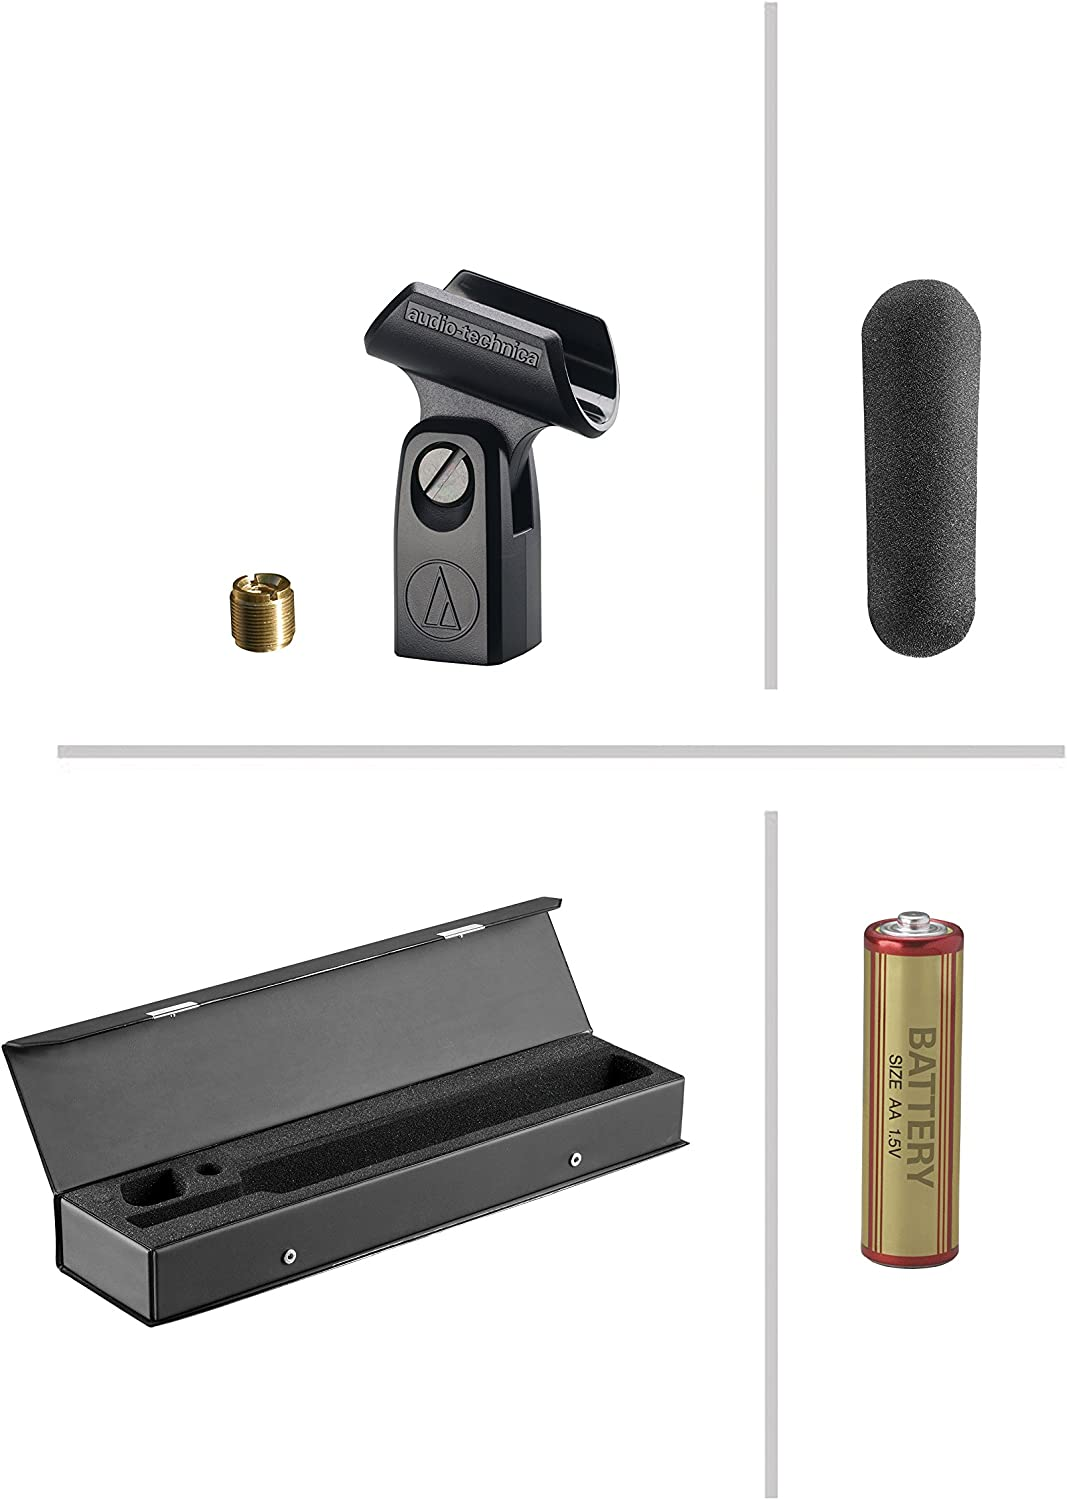 Carrying Case Audio-Technica AT897 Line AA Battery and Extended Warranty Windscreen Includes Gradient Condenser Microphone